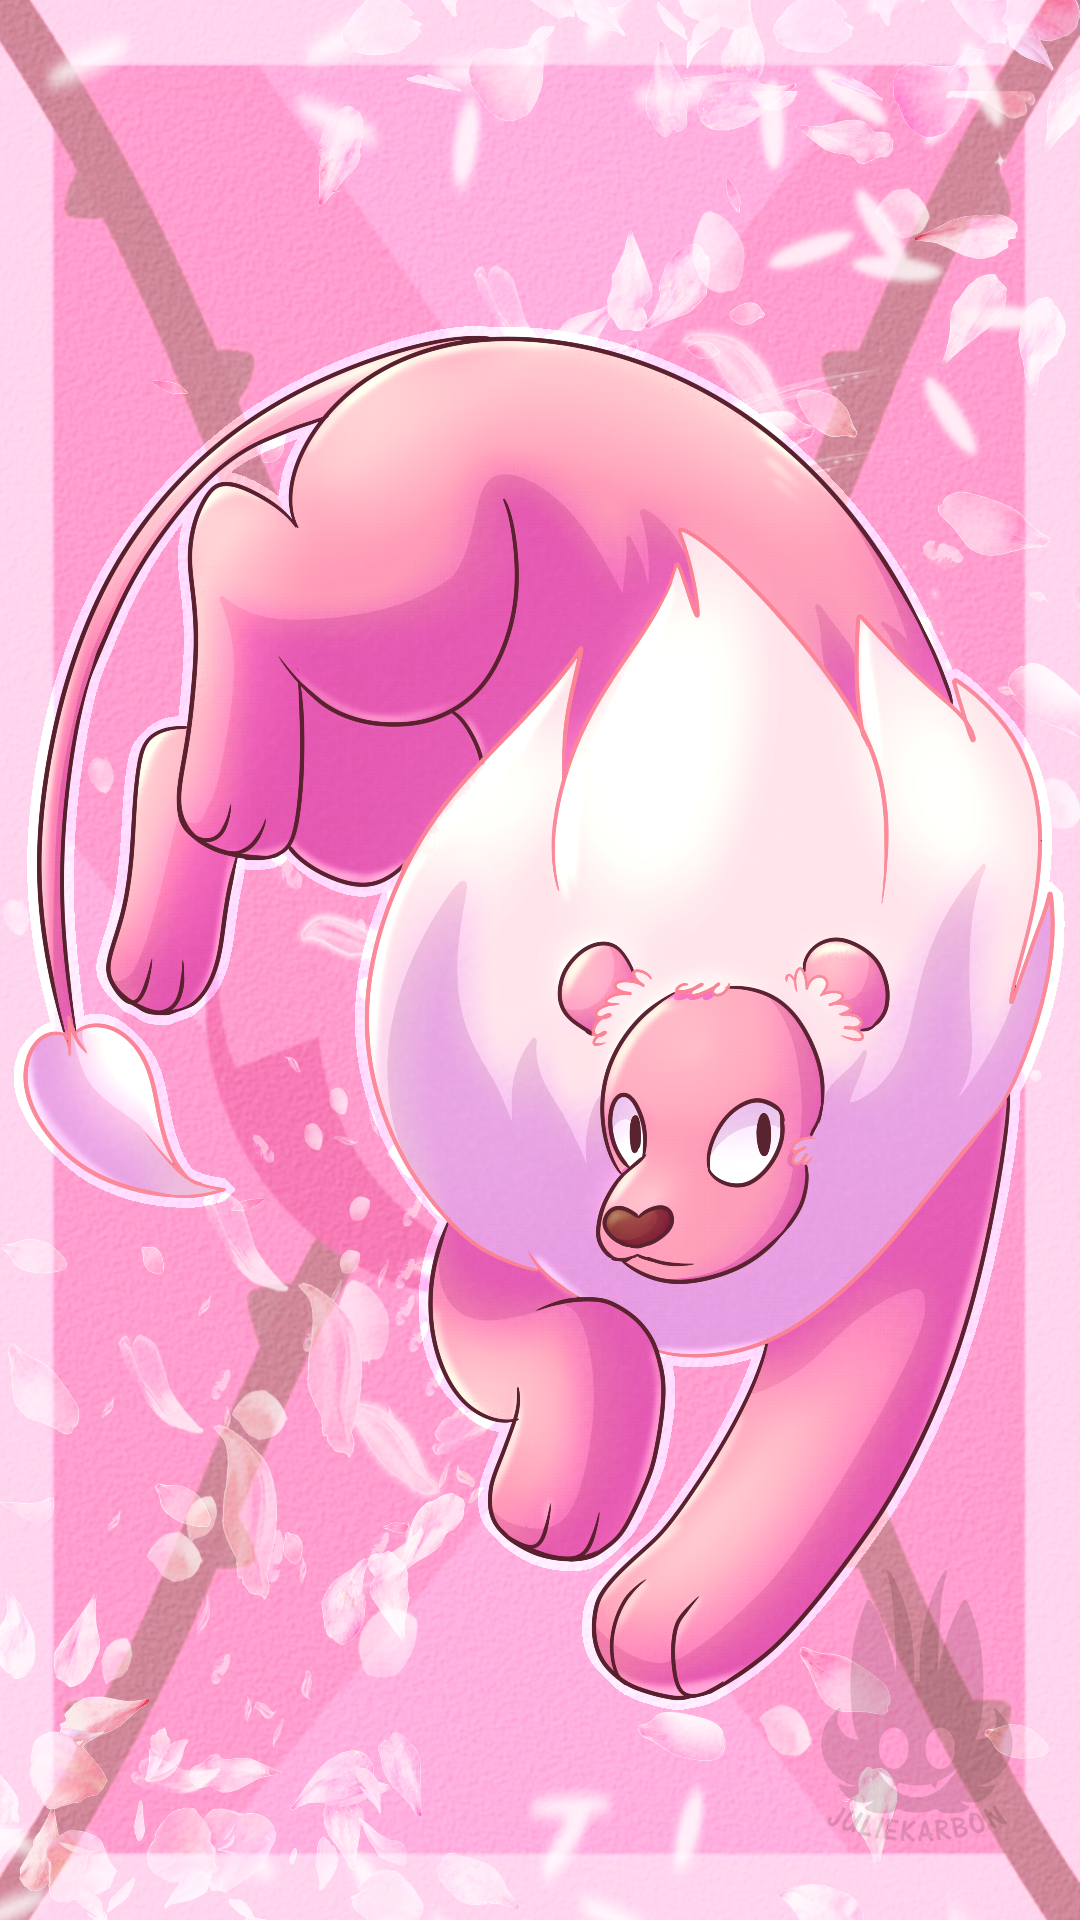 Android Wallpaper commission featuring Lion from Steven Universe!